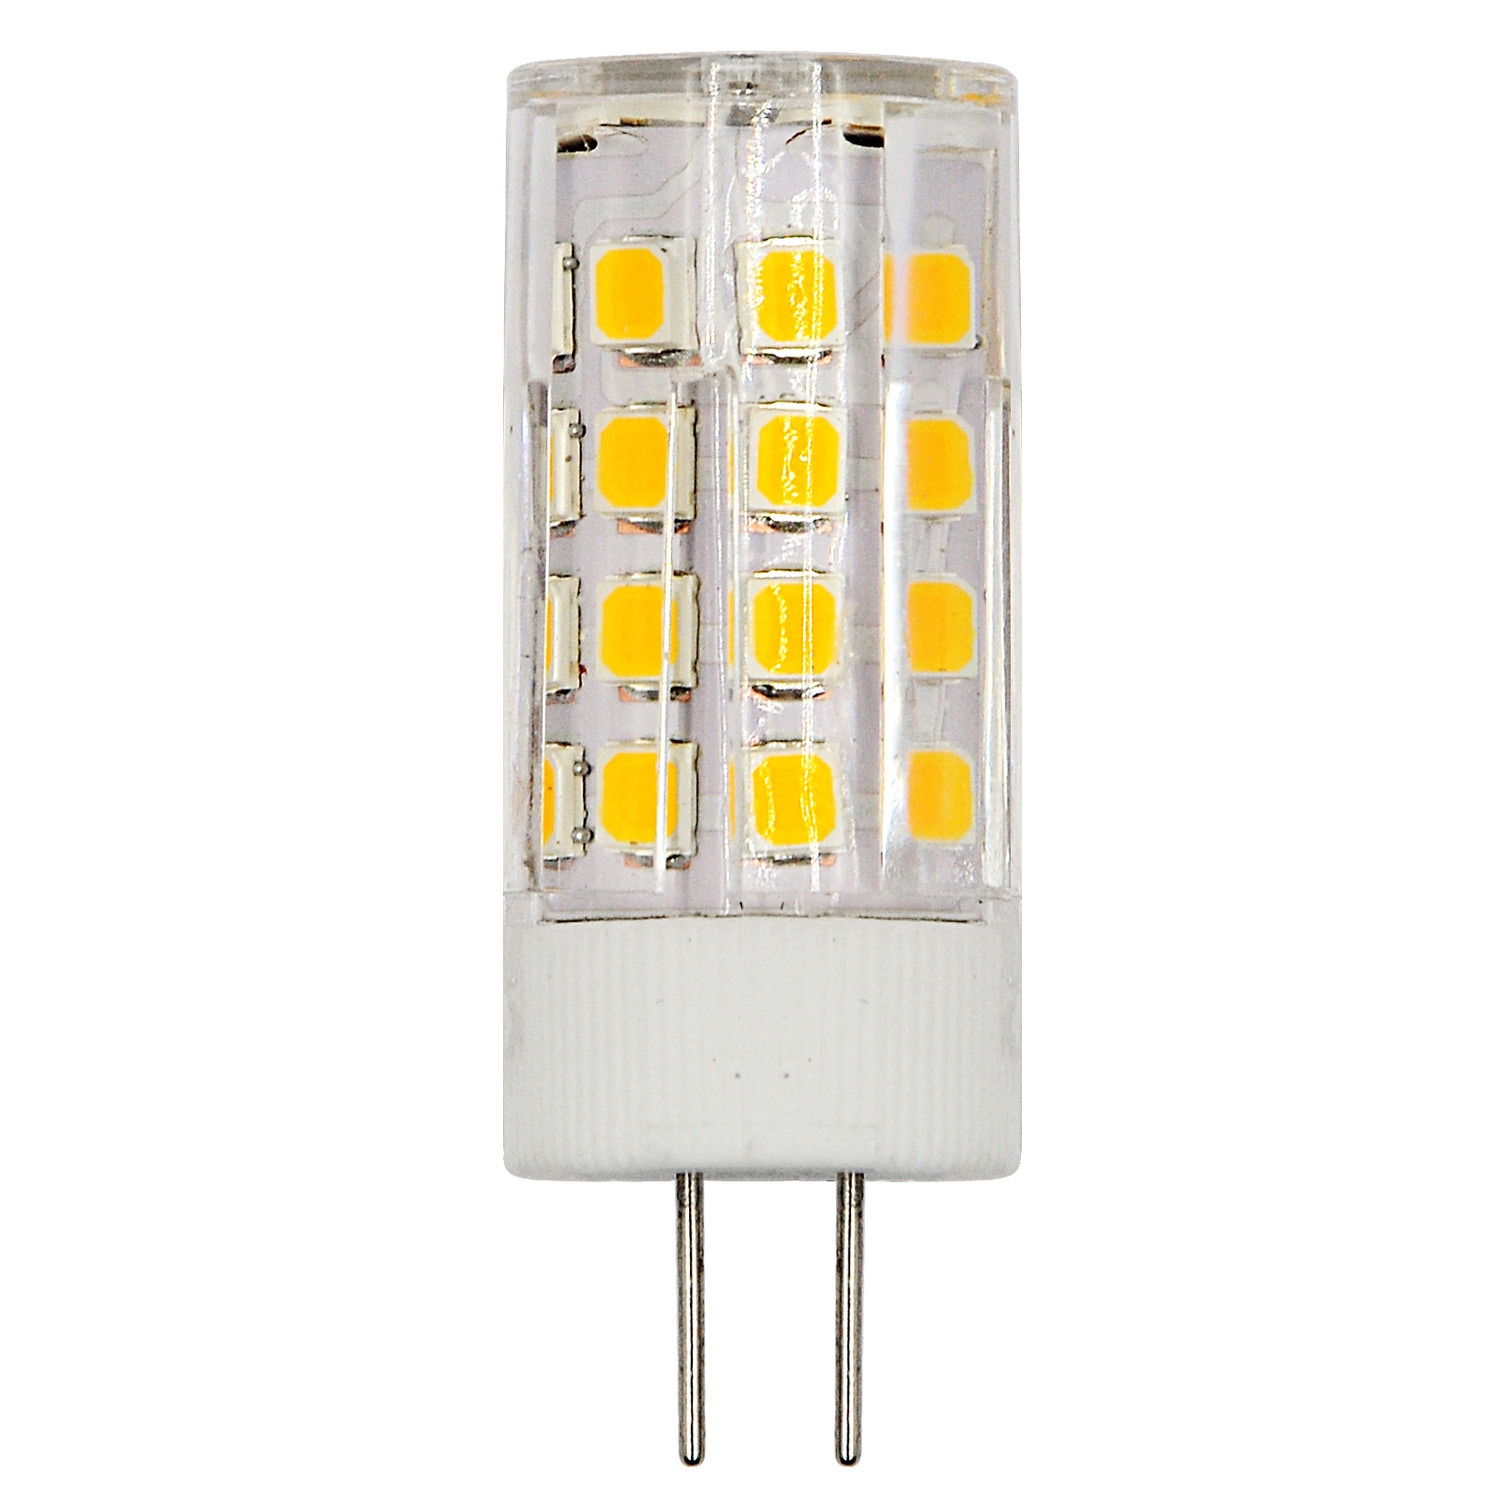 G4 4w Led Light 36x 2835 Smd Bulb Lamp Ac Dc 12v In Warm White Fluorescent Driver Mengs